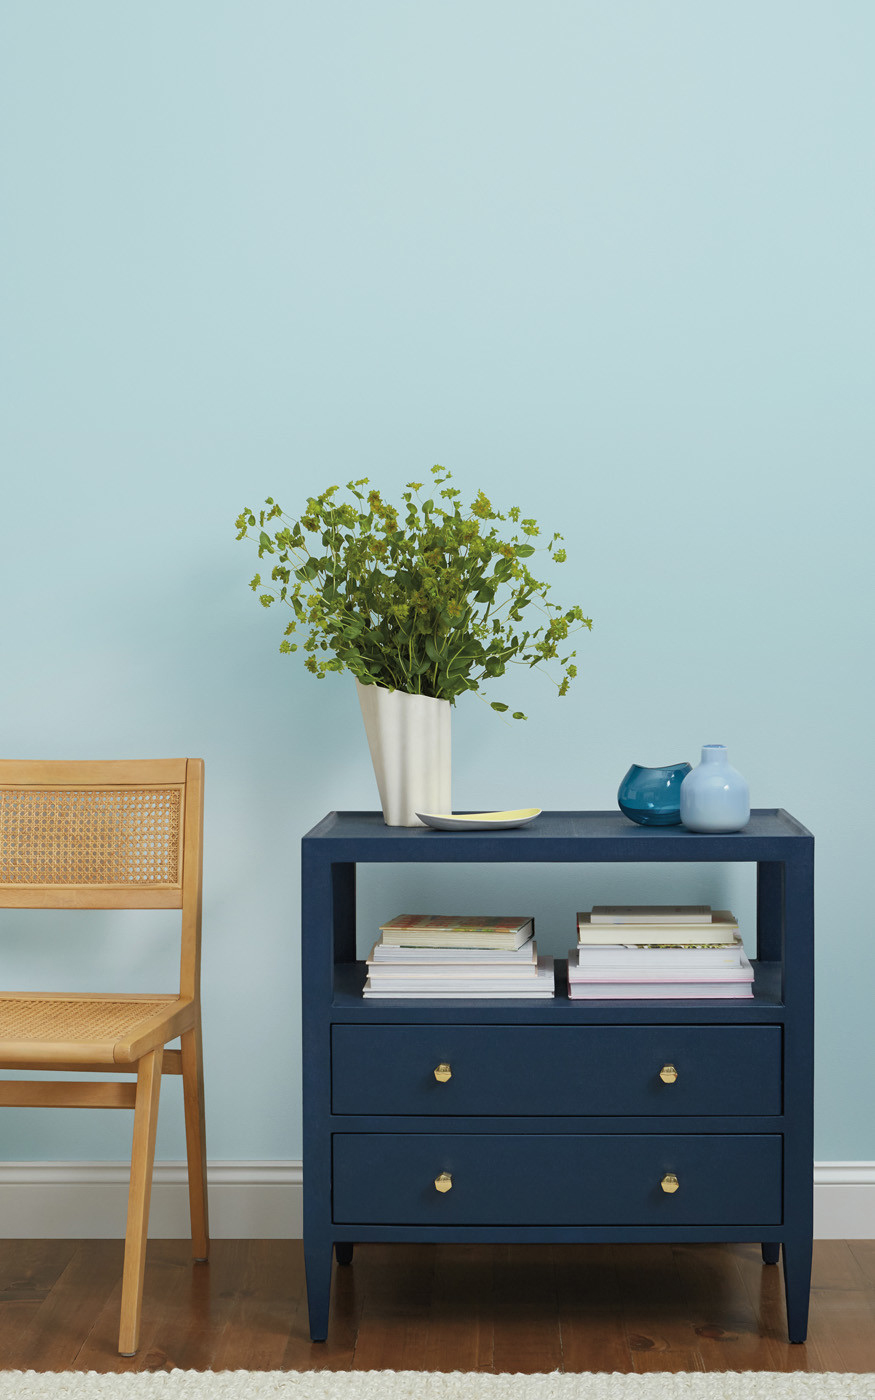 white vase of greenery atop blue book case